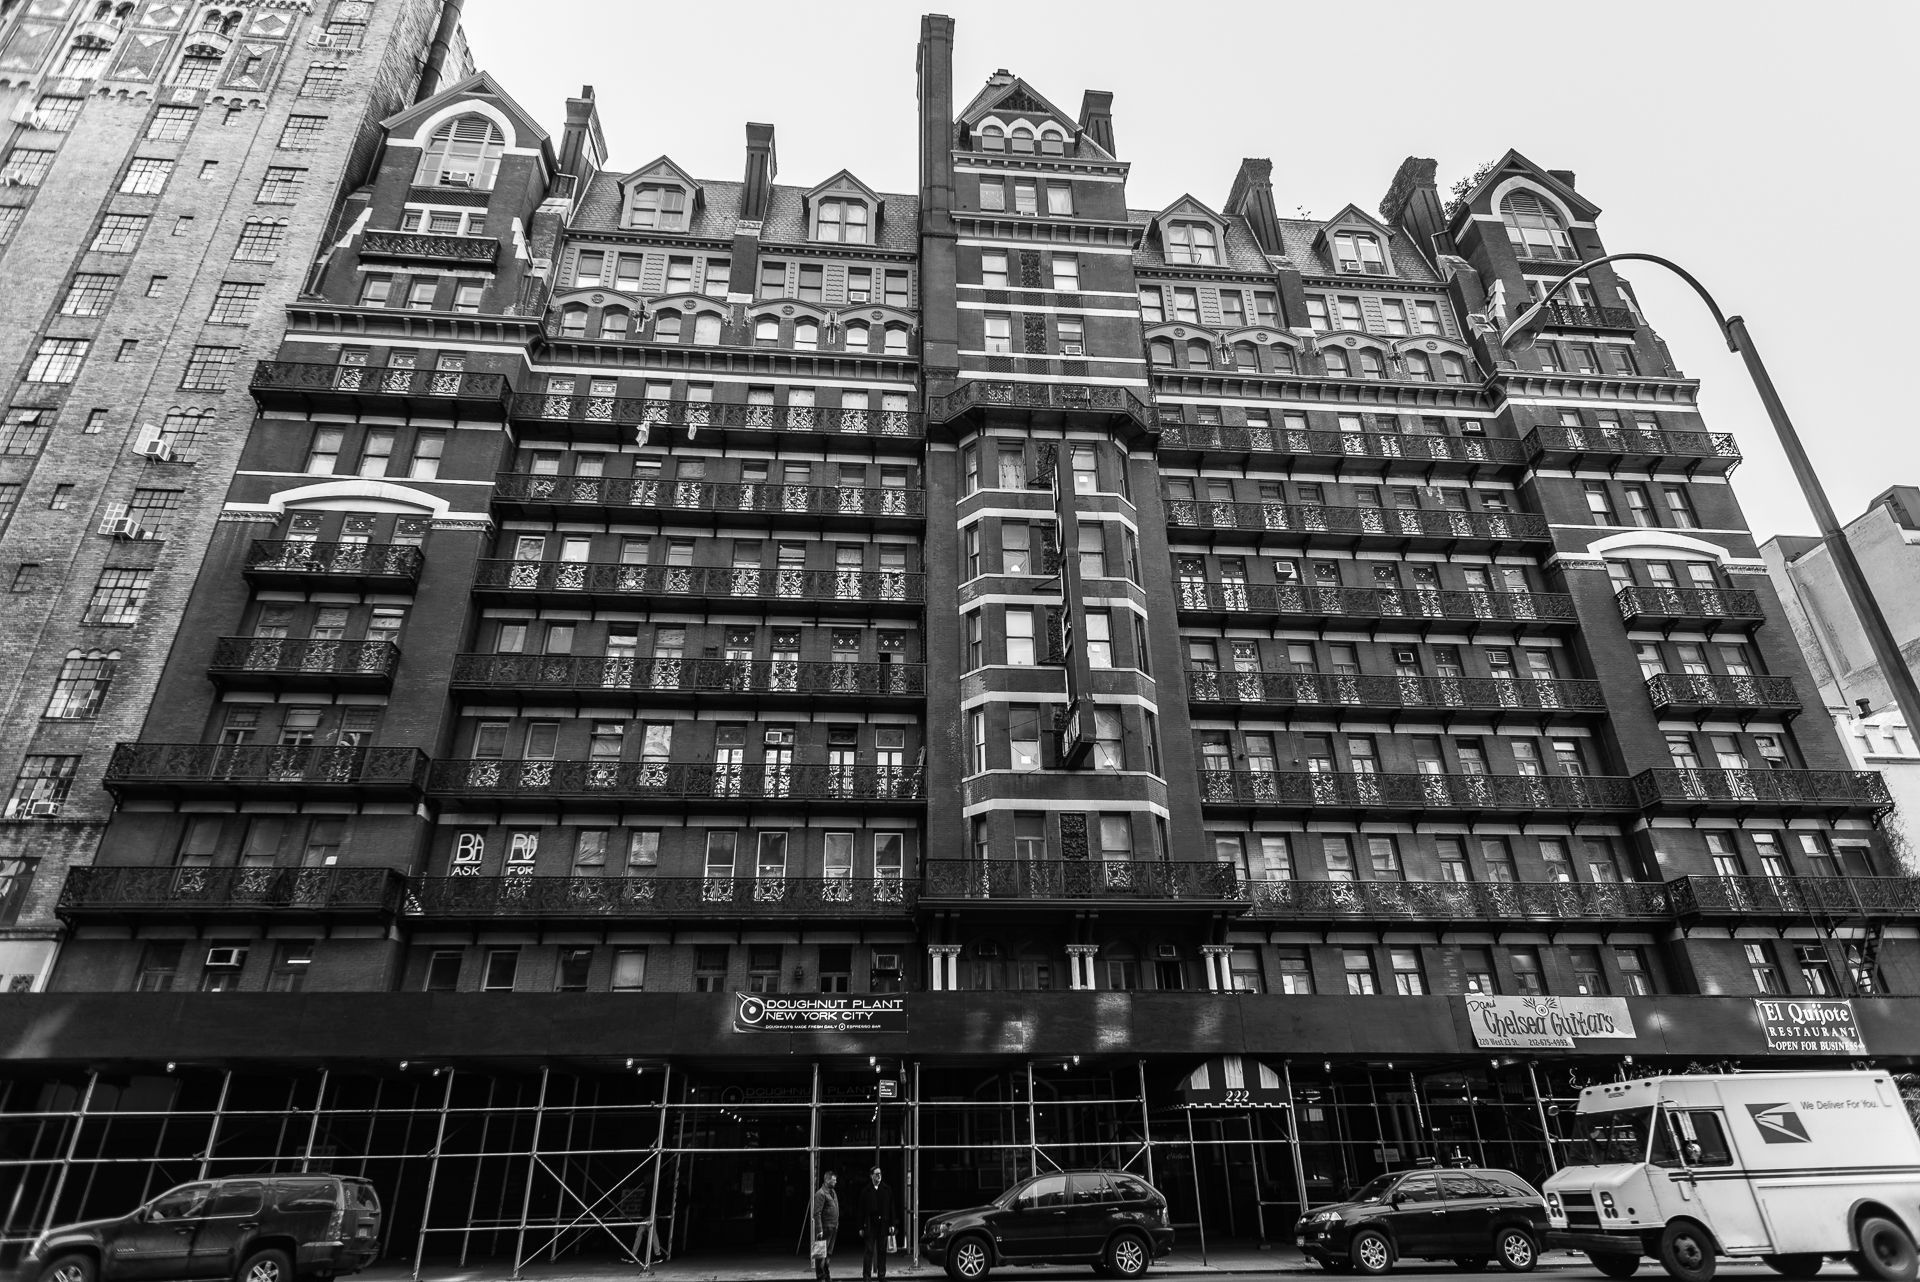 NYC's Ghost Landmarks of Rock Tour